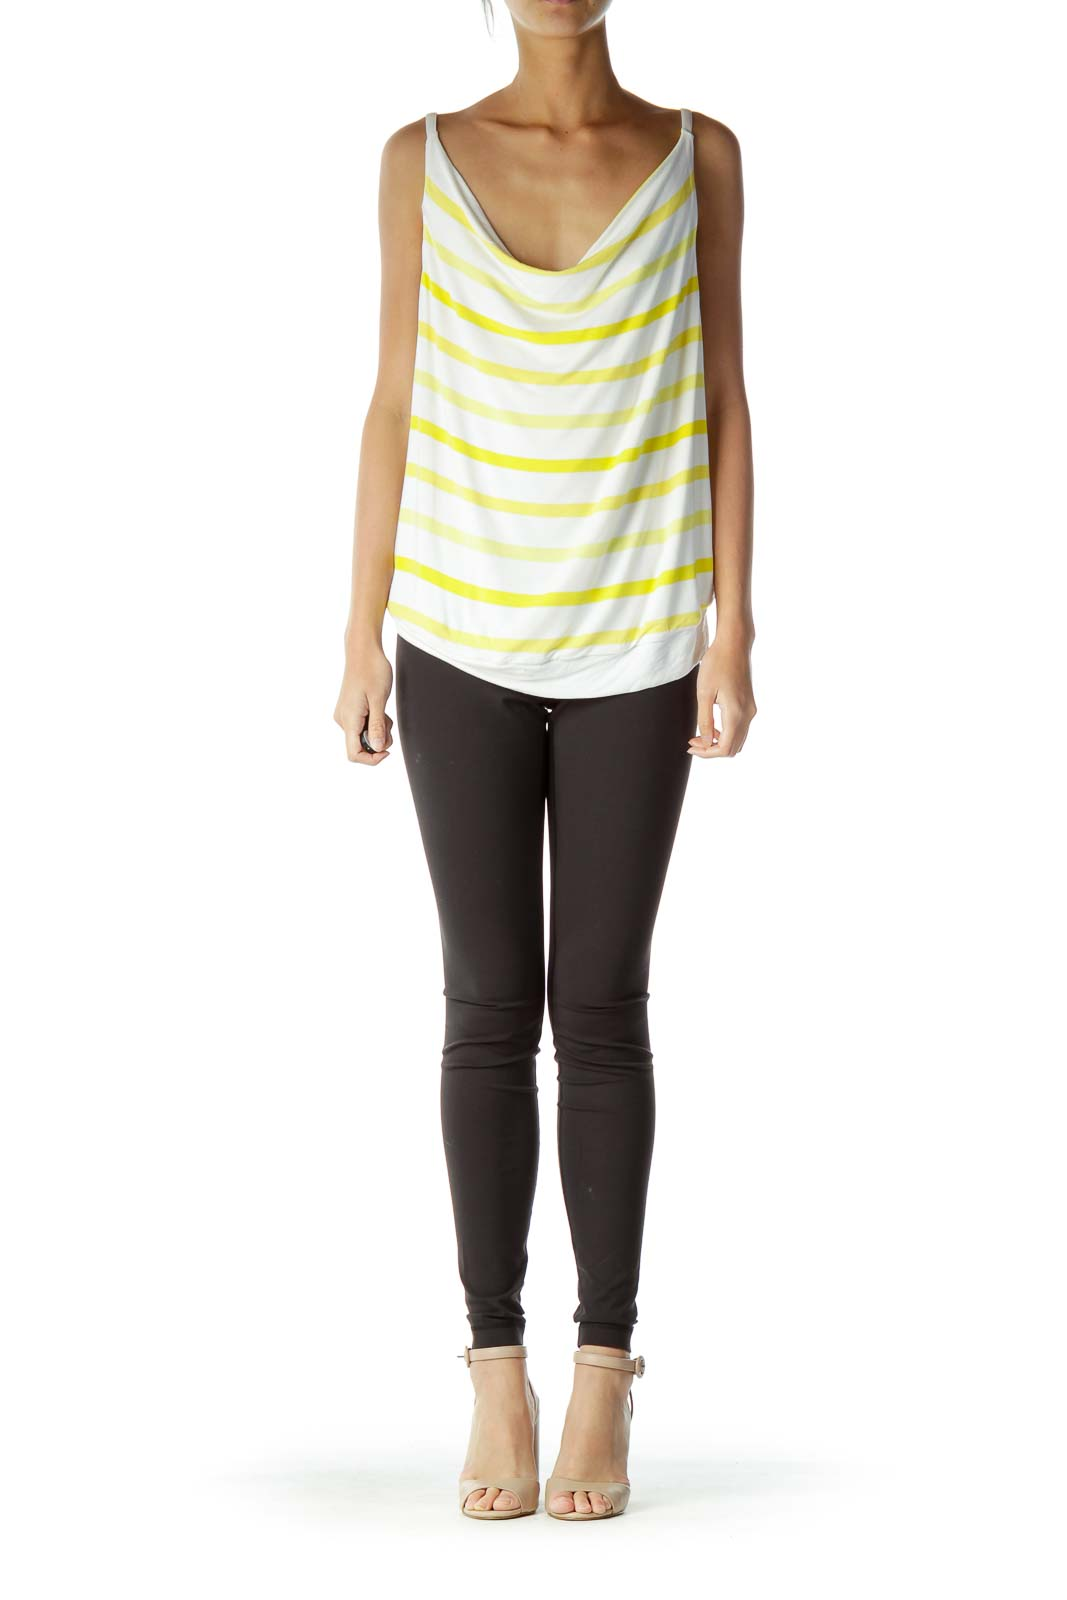 Cream Yellow Striped Tank Top